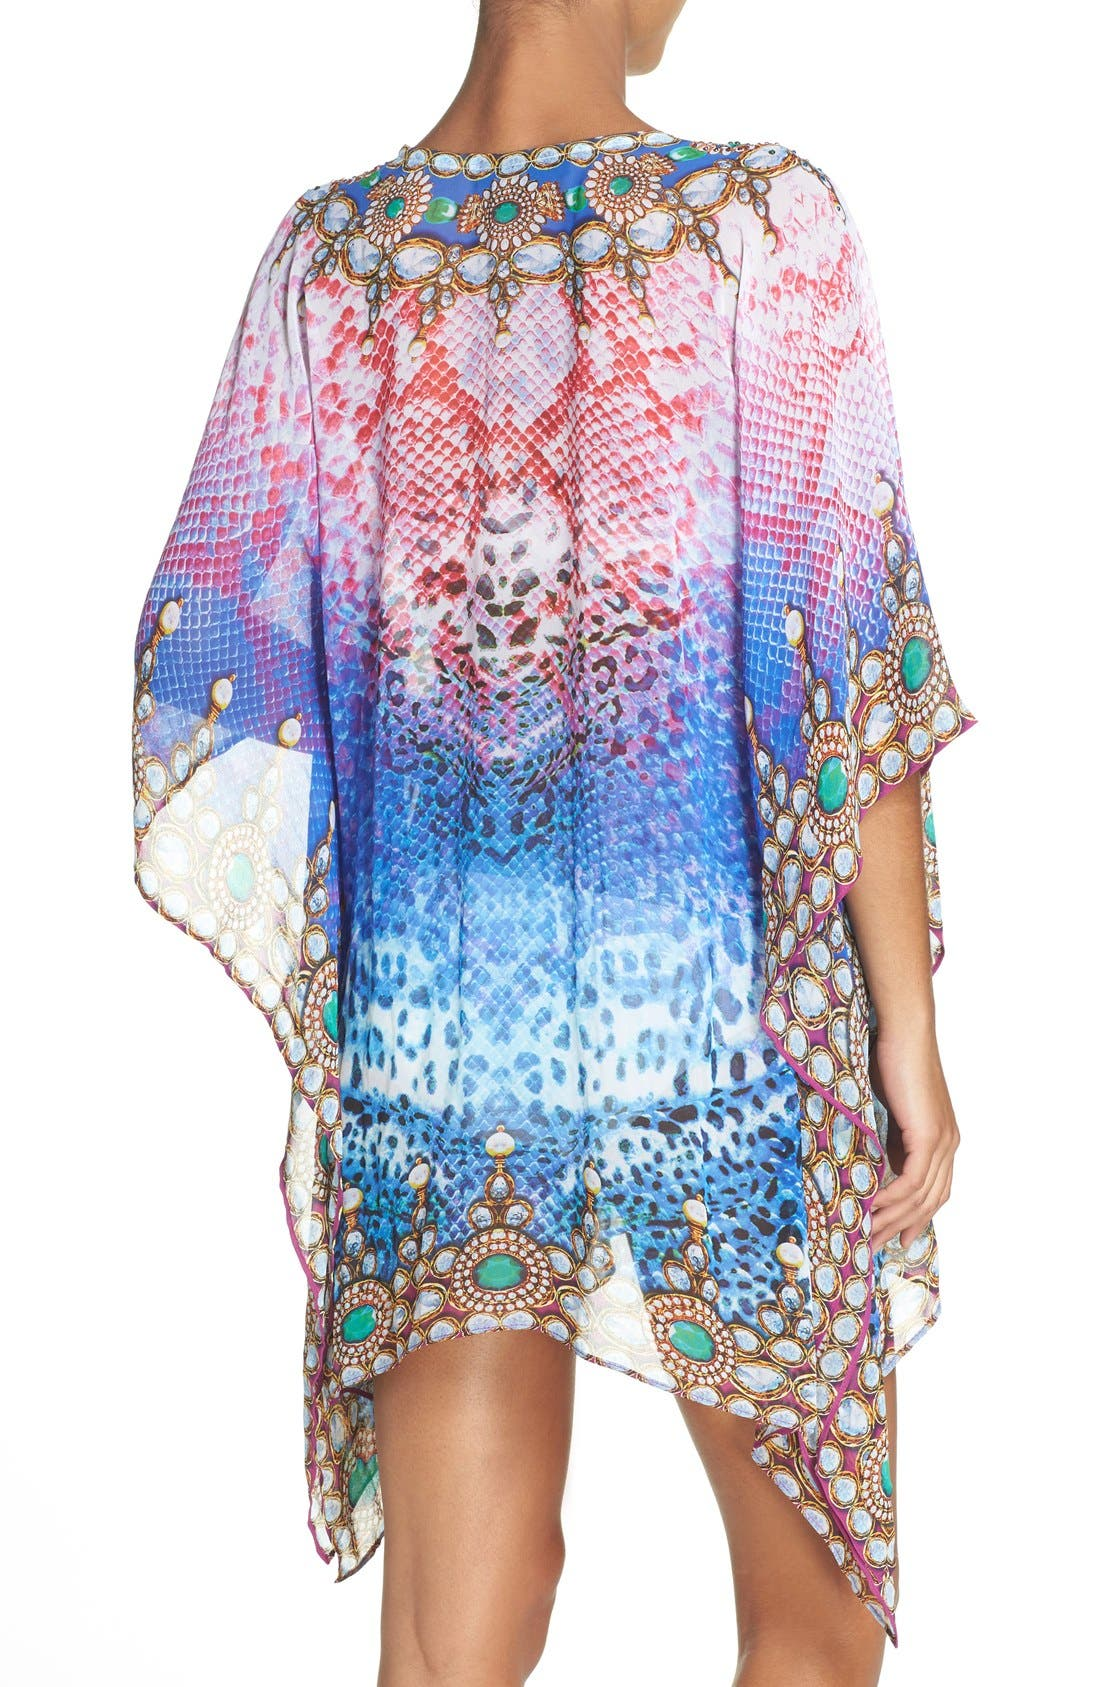 Bora Bora Short Kaftan,                             Alternate thumbnail 4, color,                             MULTI BLUE/ PINK